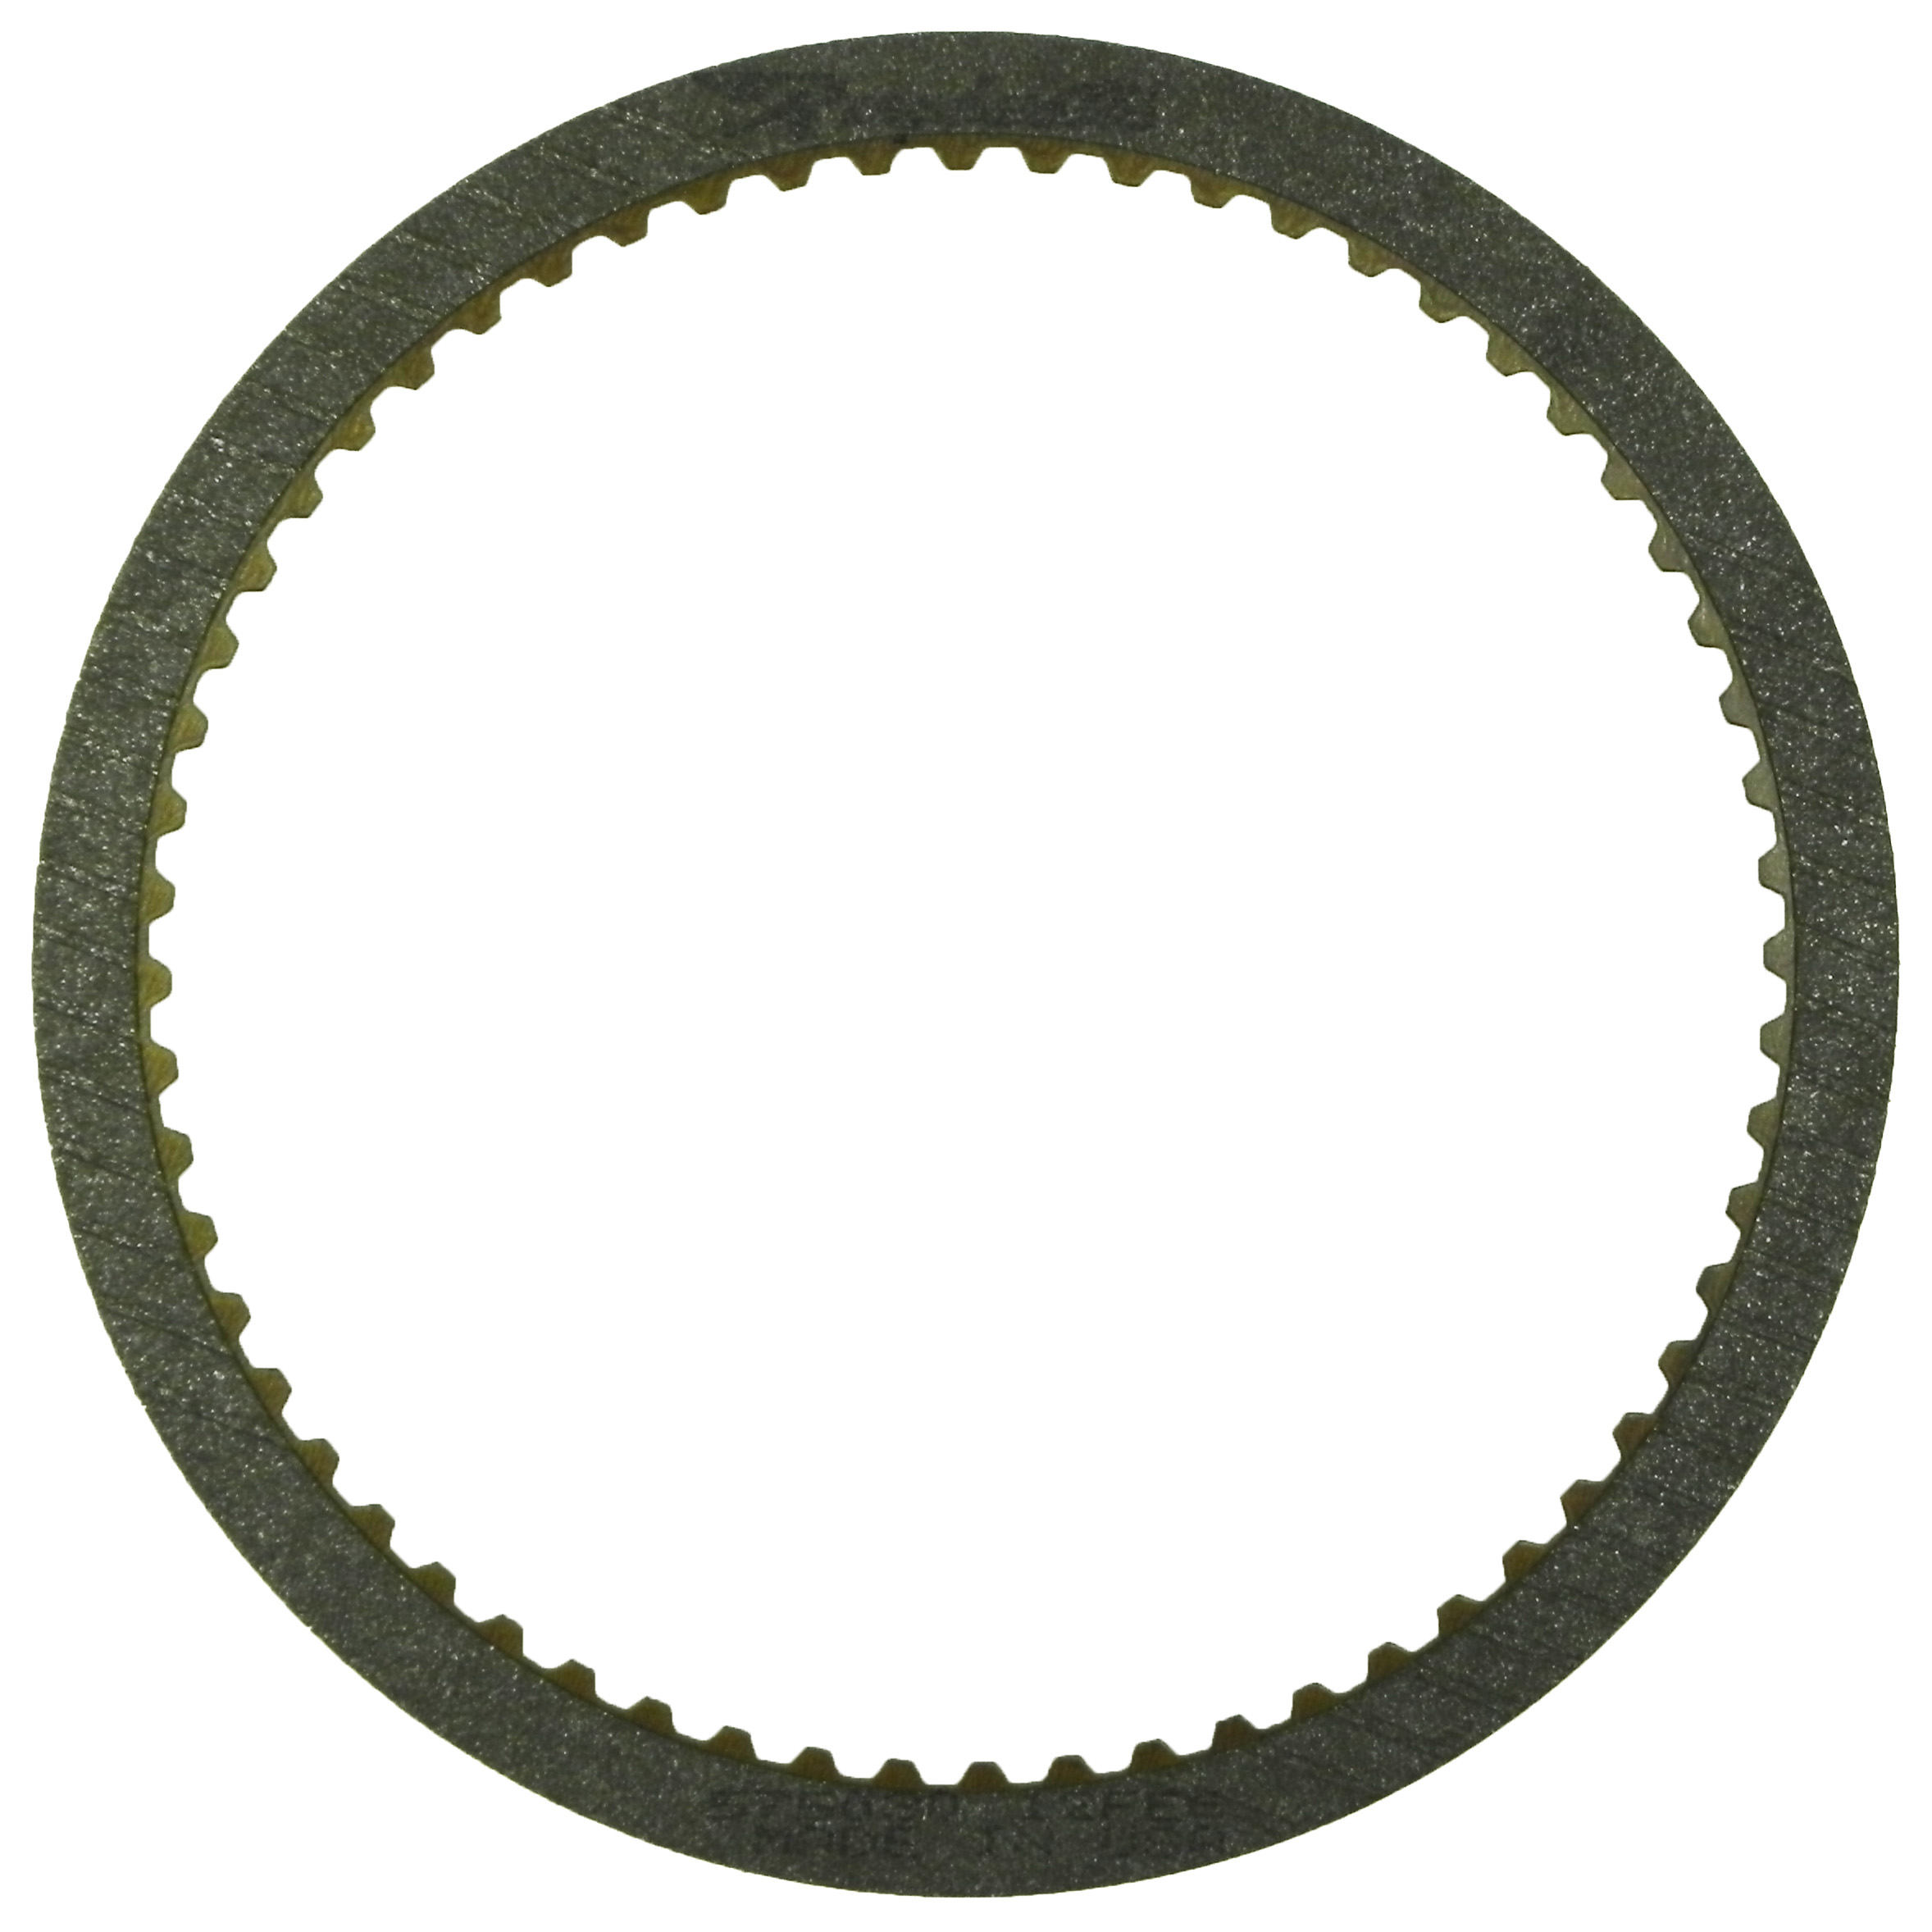 E4OD, 4R100 Graphitic Friction Clutch Plate